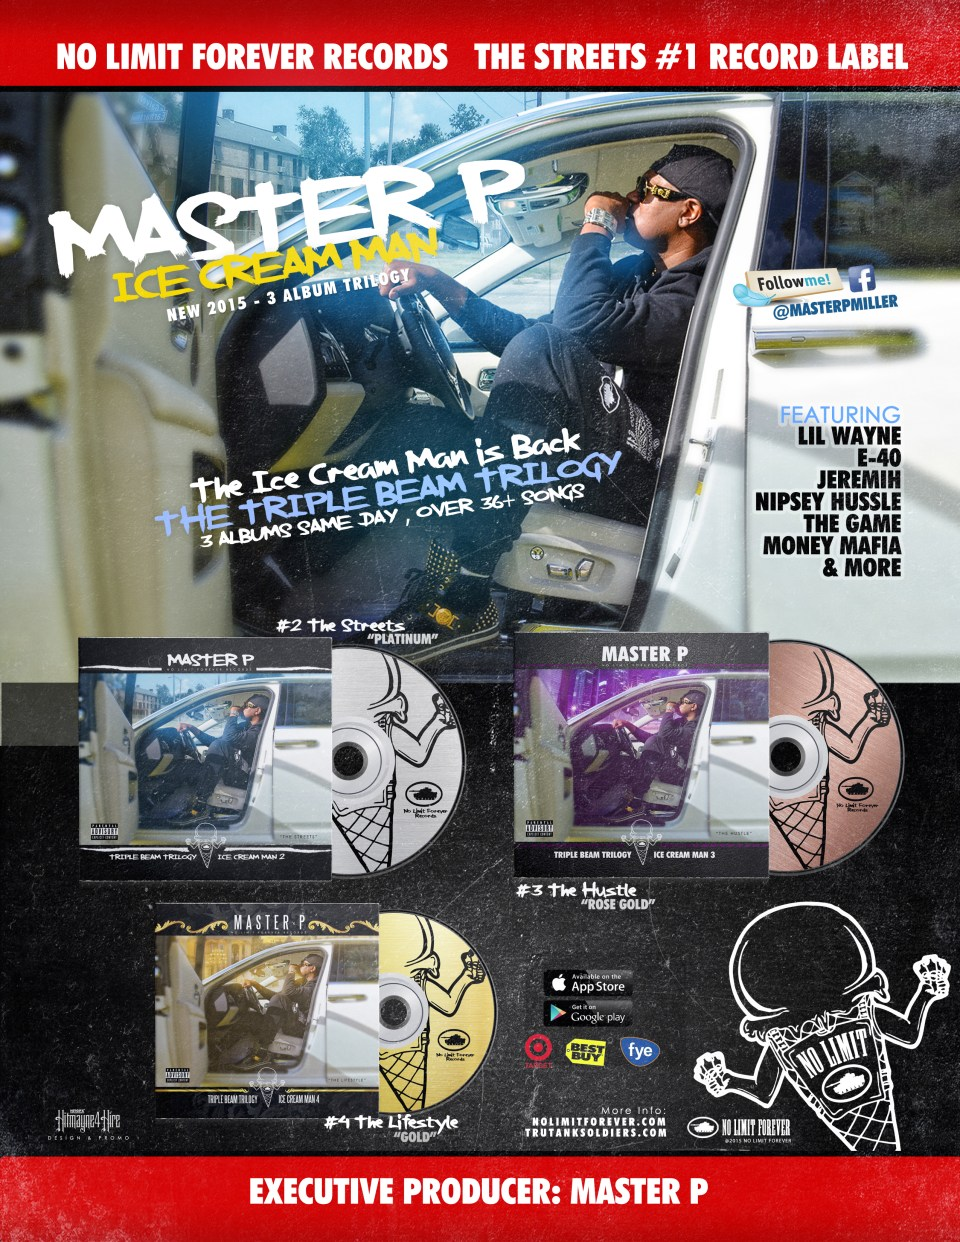 MASTERP_ICM_3ALBUM_OLDSCHOOL_MAGAZINE_AD_FINAL1